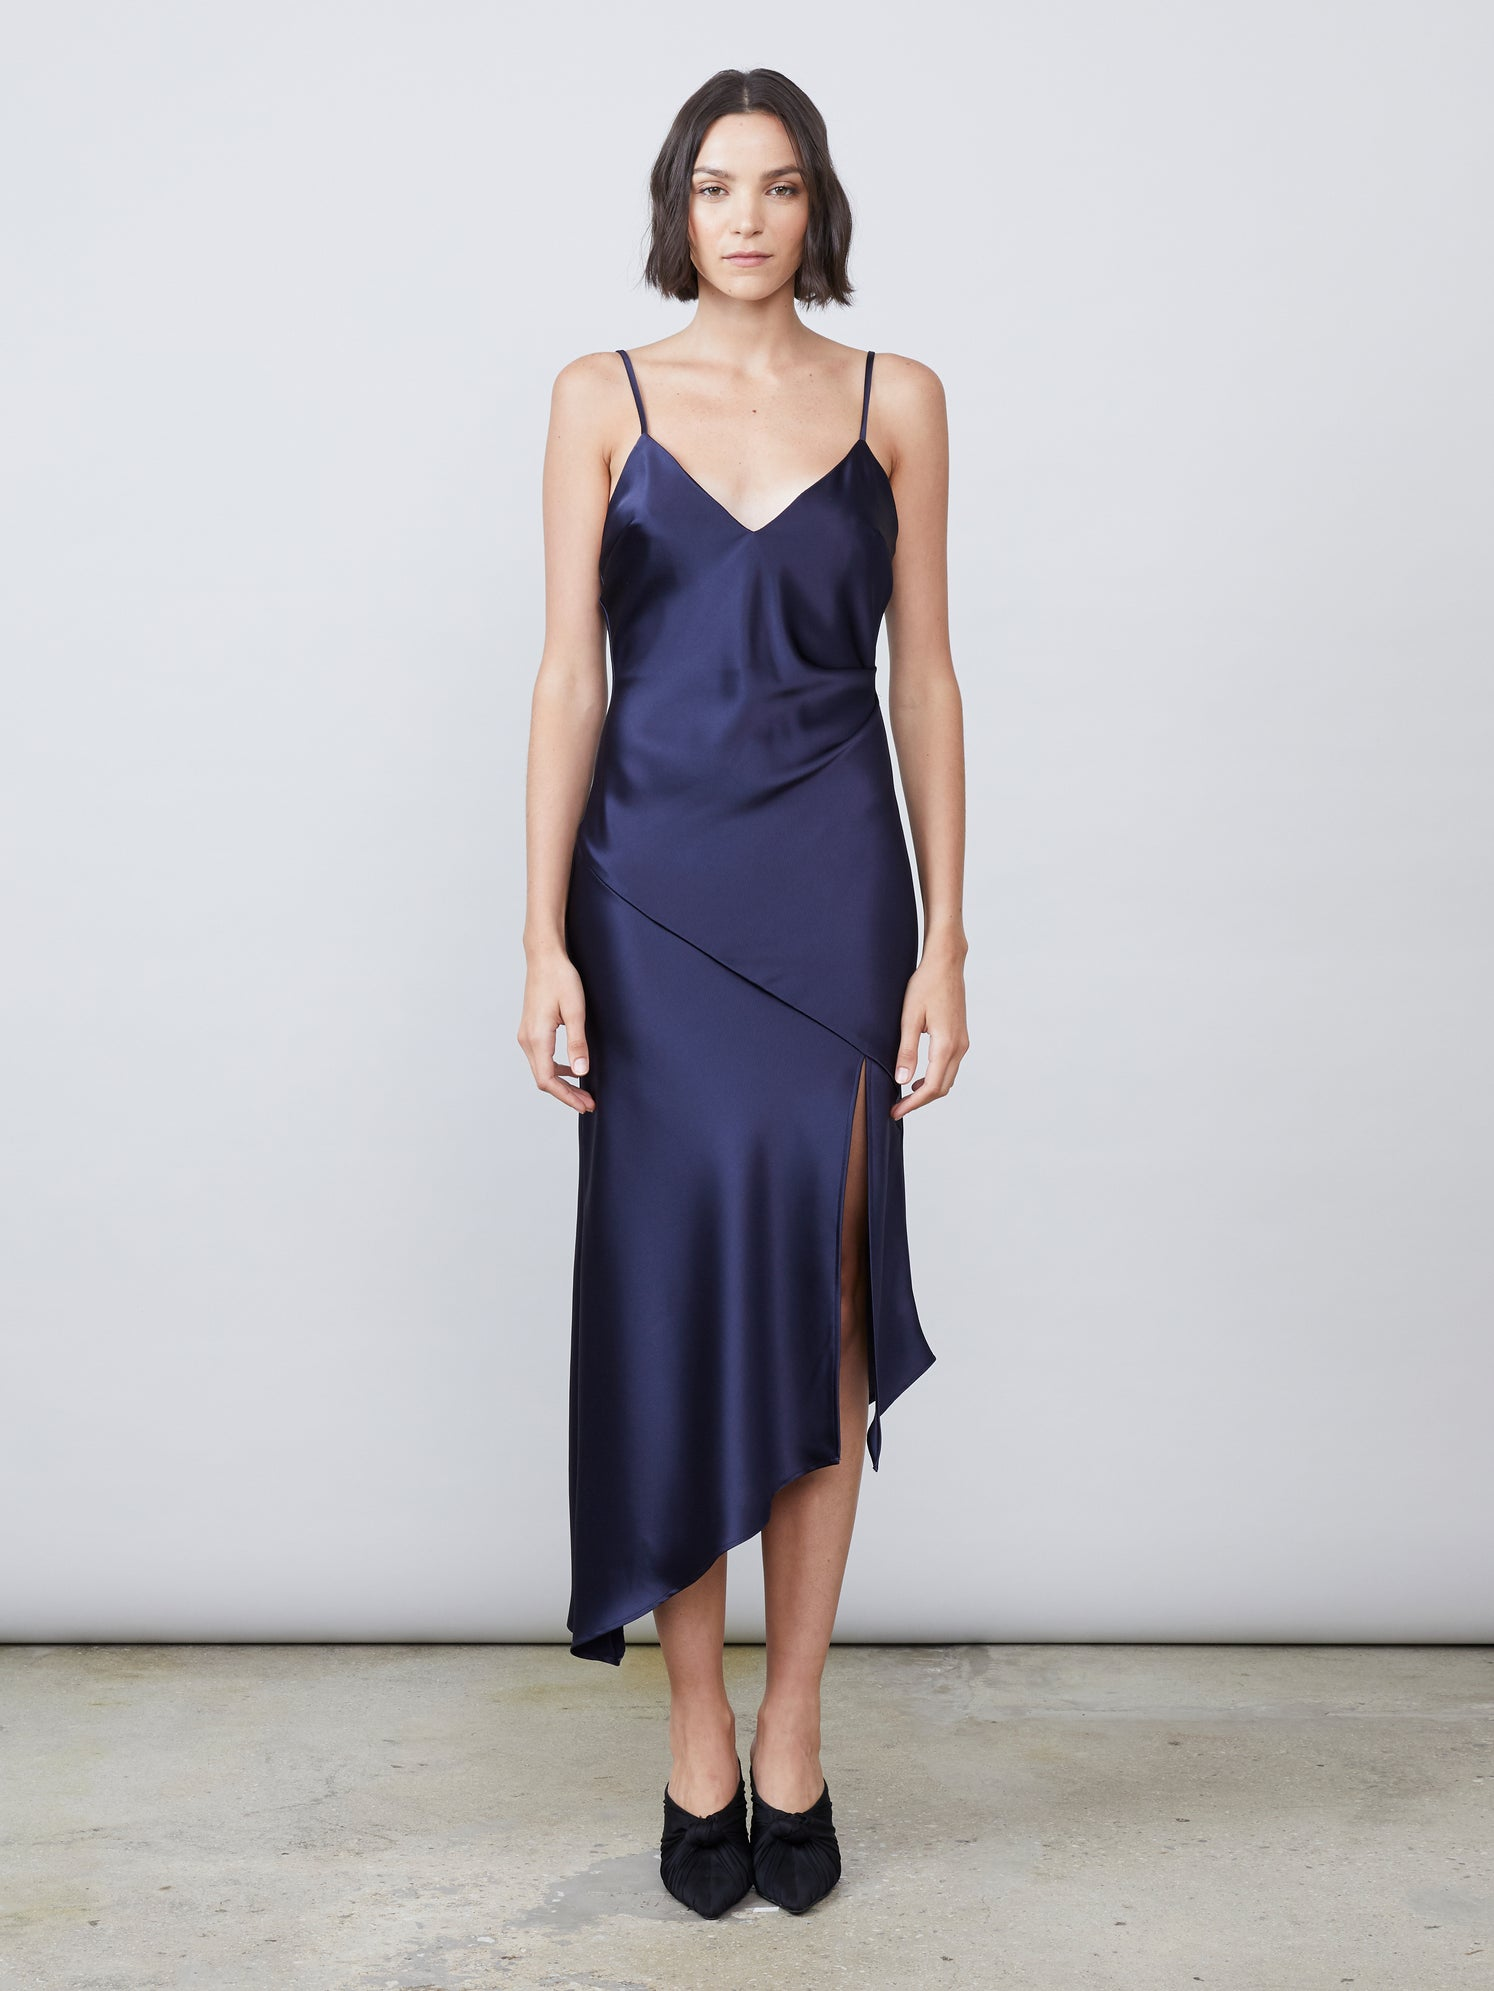 Satin luxe deep v draped slip dress Alternate